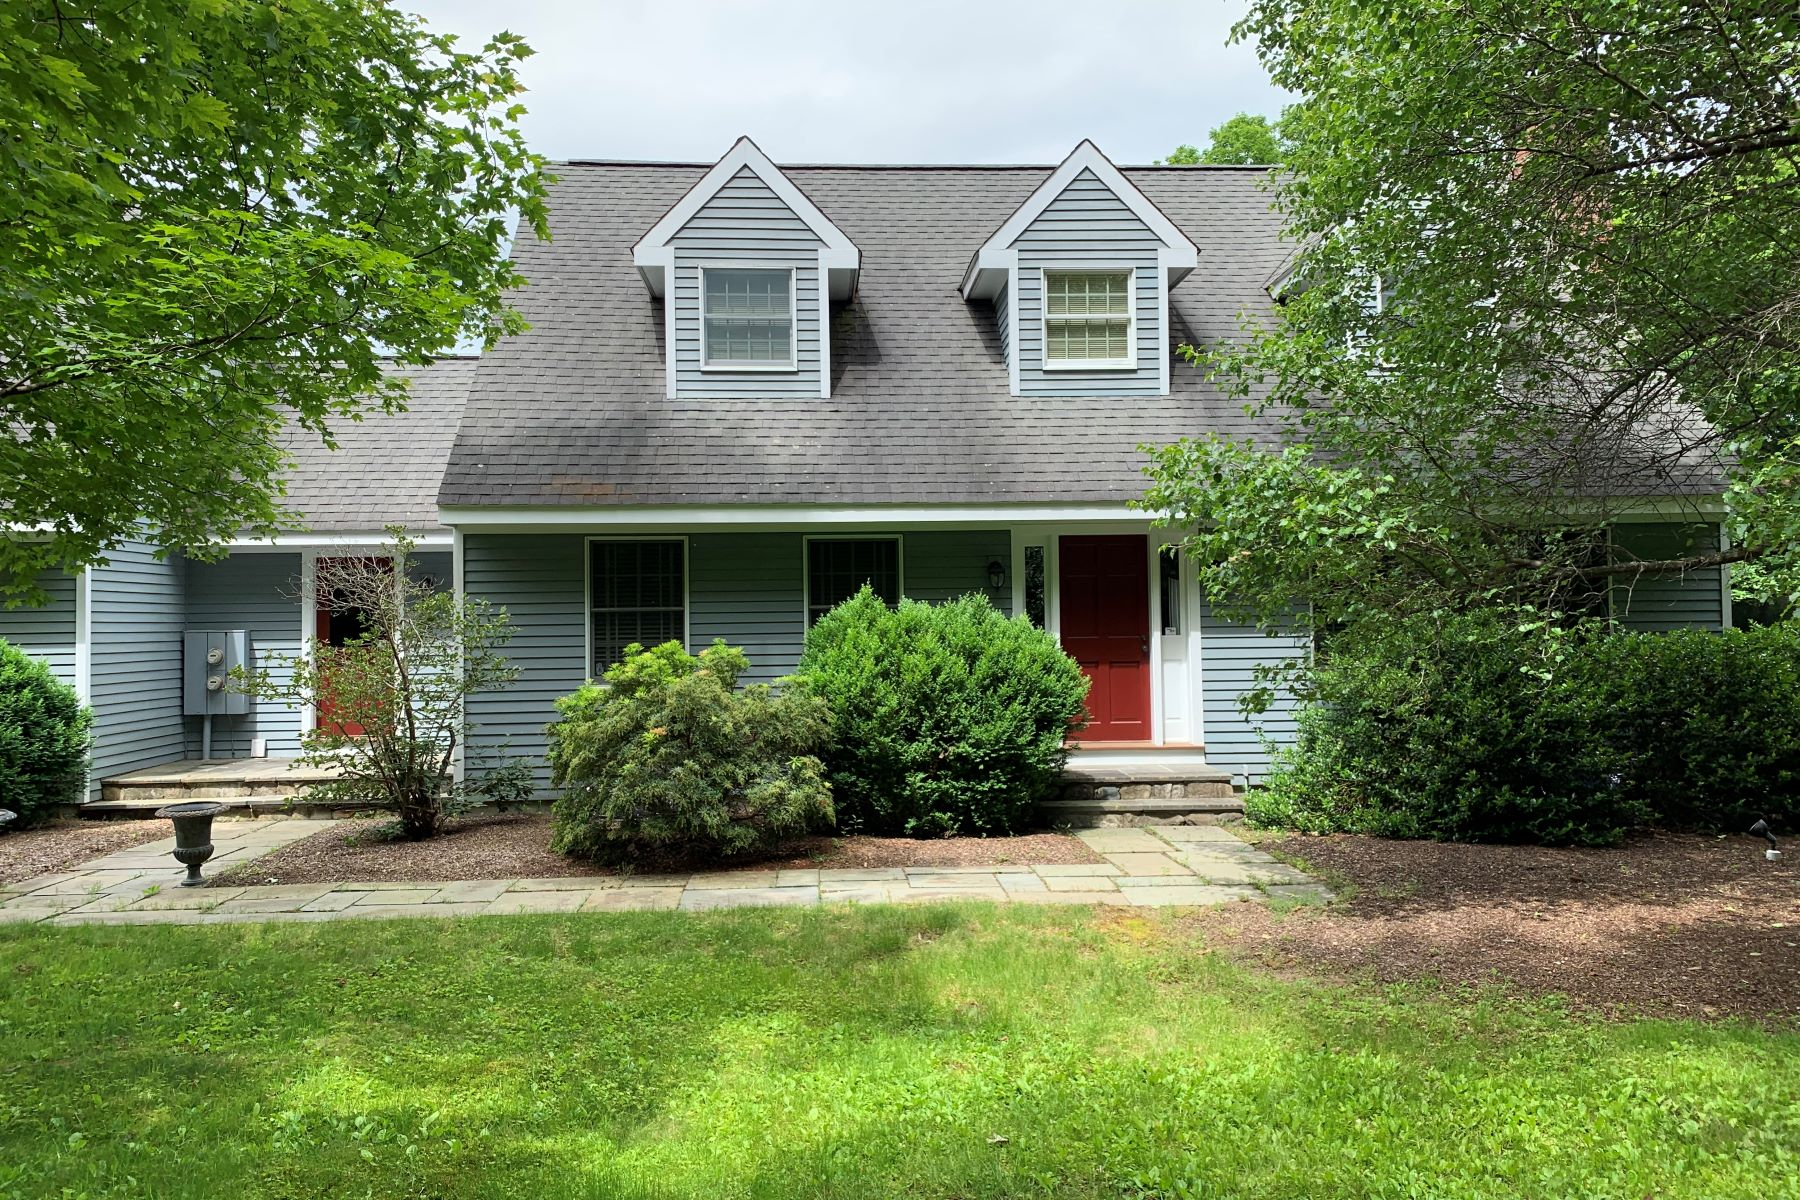 Single Family Homes for Sale at Beautiful Cape on 5 Acres 151 Minortown Road Woodbury, Connecticut 06798 United States